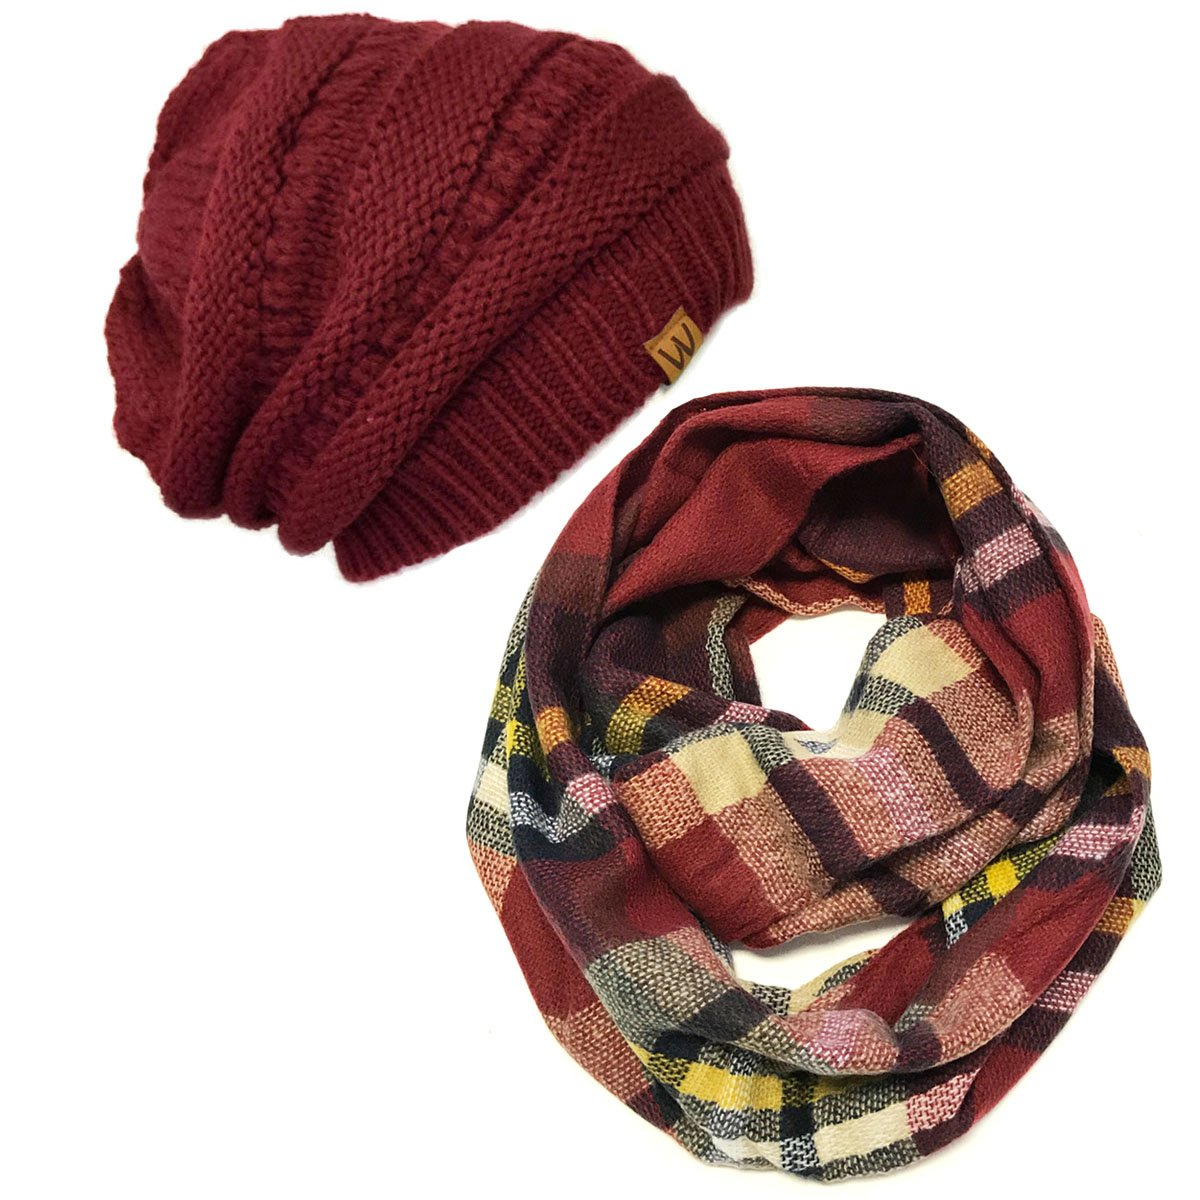 Bowbear Tartan Winter Infinity Scarf with Beanie, Multicolored + Wine Red